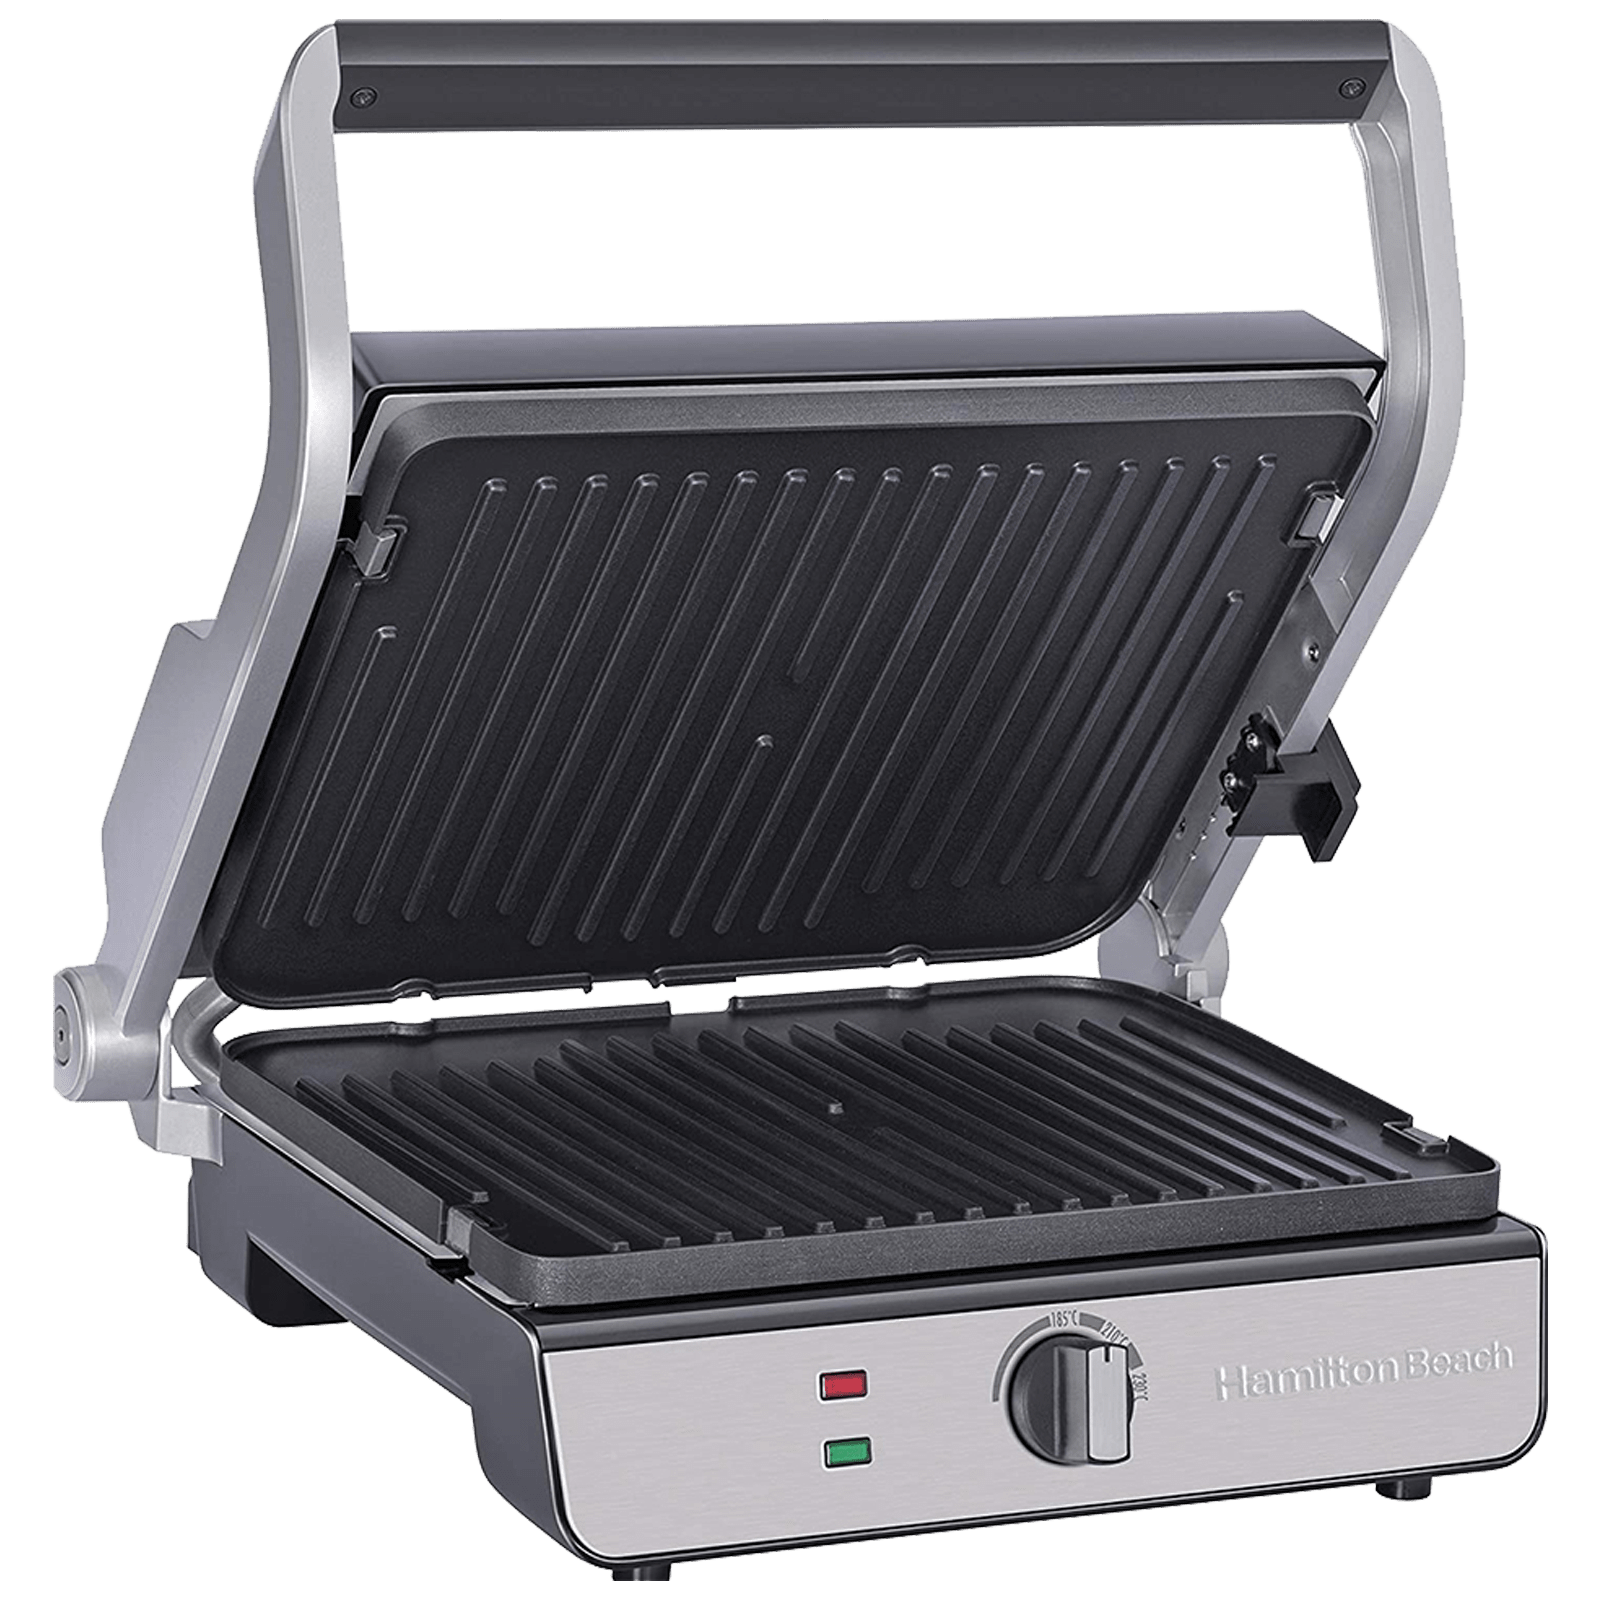 Hamilton Beach 1740 Watts 4 Slices Automatic Grilling Waffle Making Griller (25341-SAU, Silver)